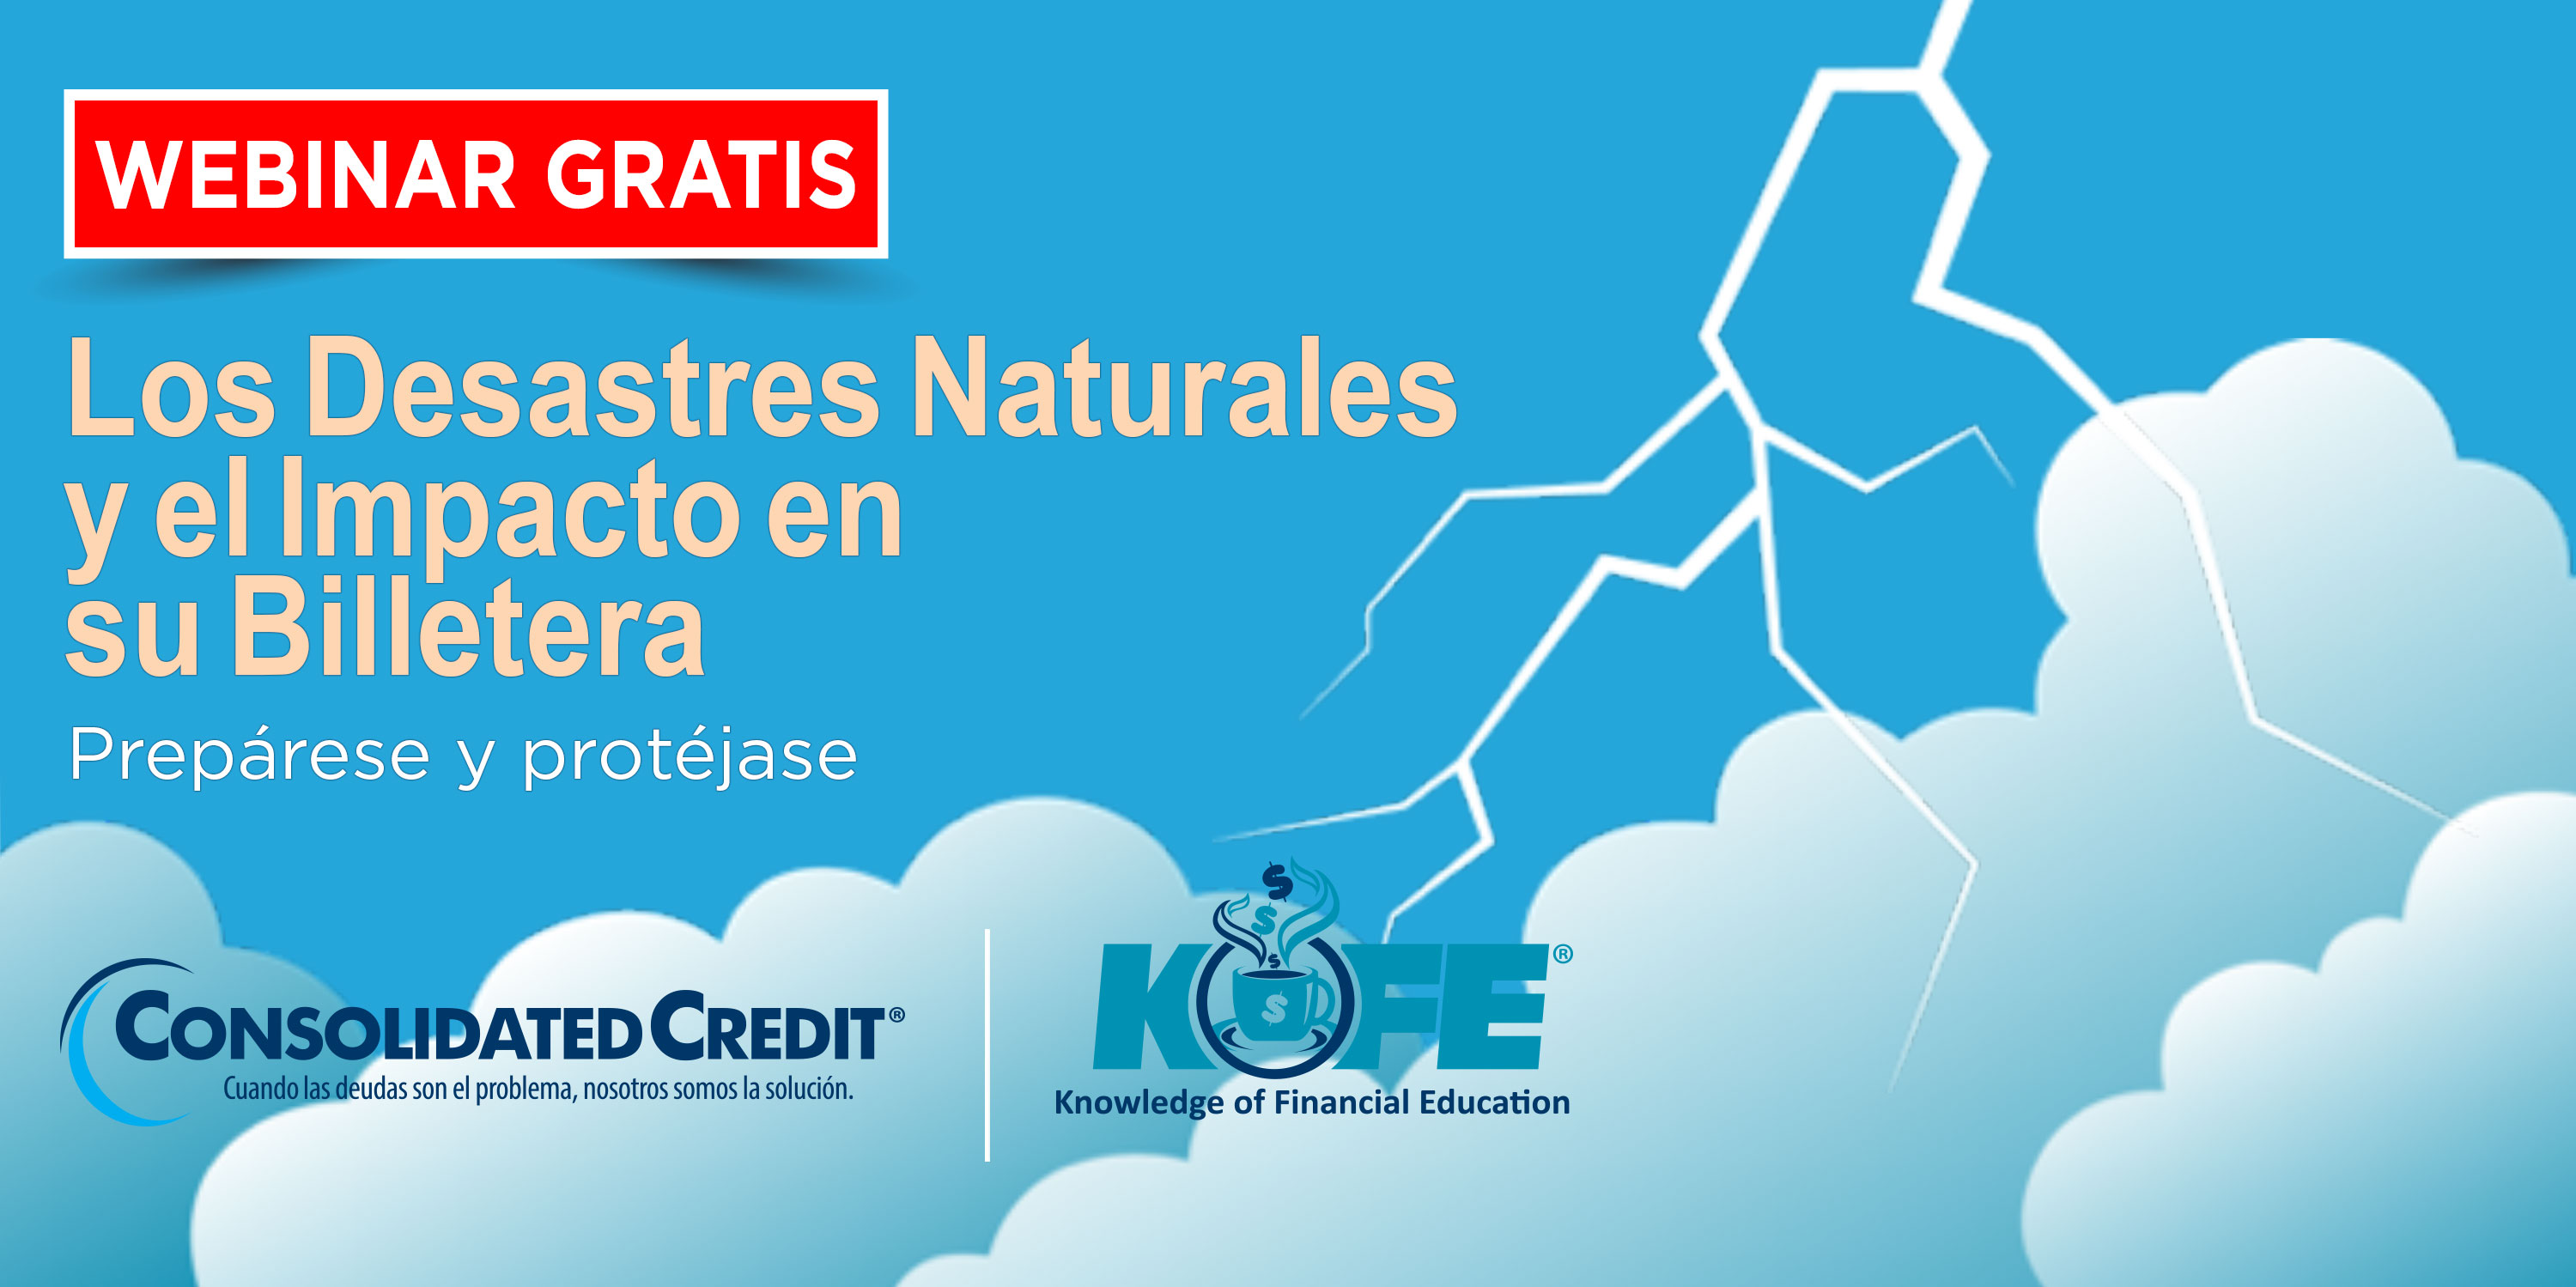 https://www.consolidatedcredit.org/es/wp-content/uploads/2020/07/Aug-19-Extreme-Weather-Events_CC-Kofe-Webinar_3000x1499_ES-2020.jpg